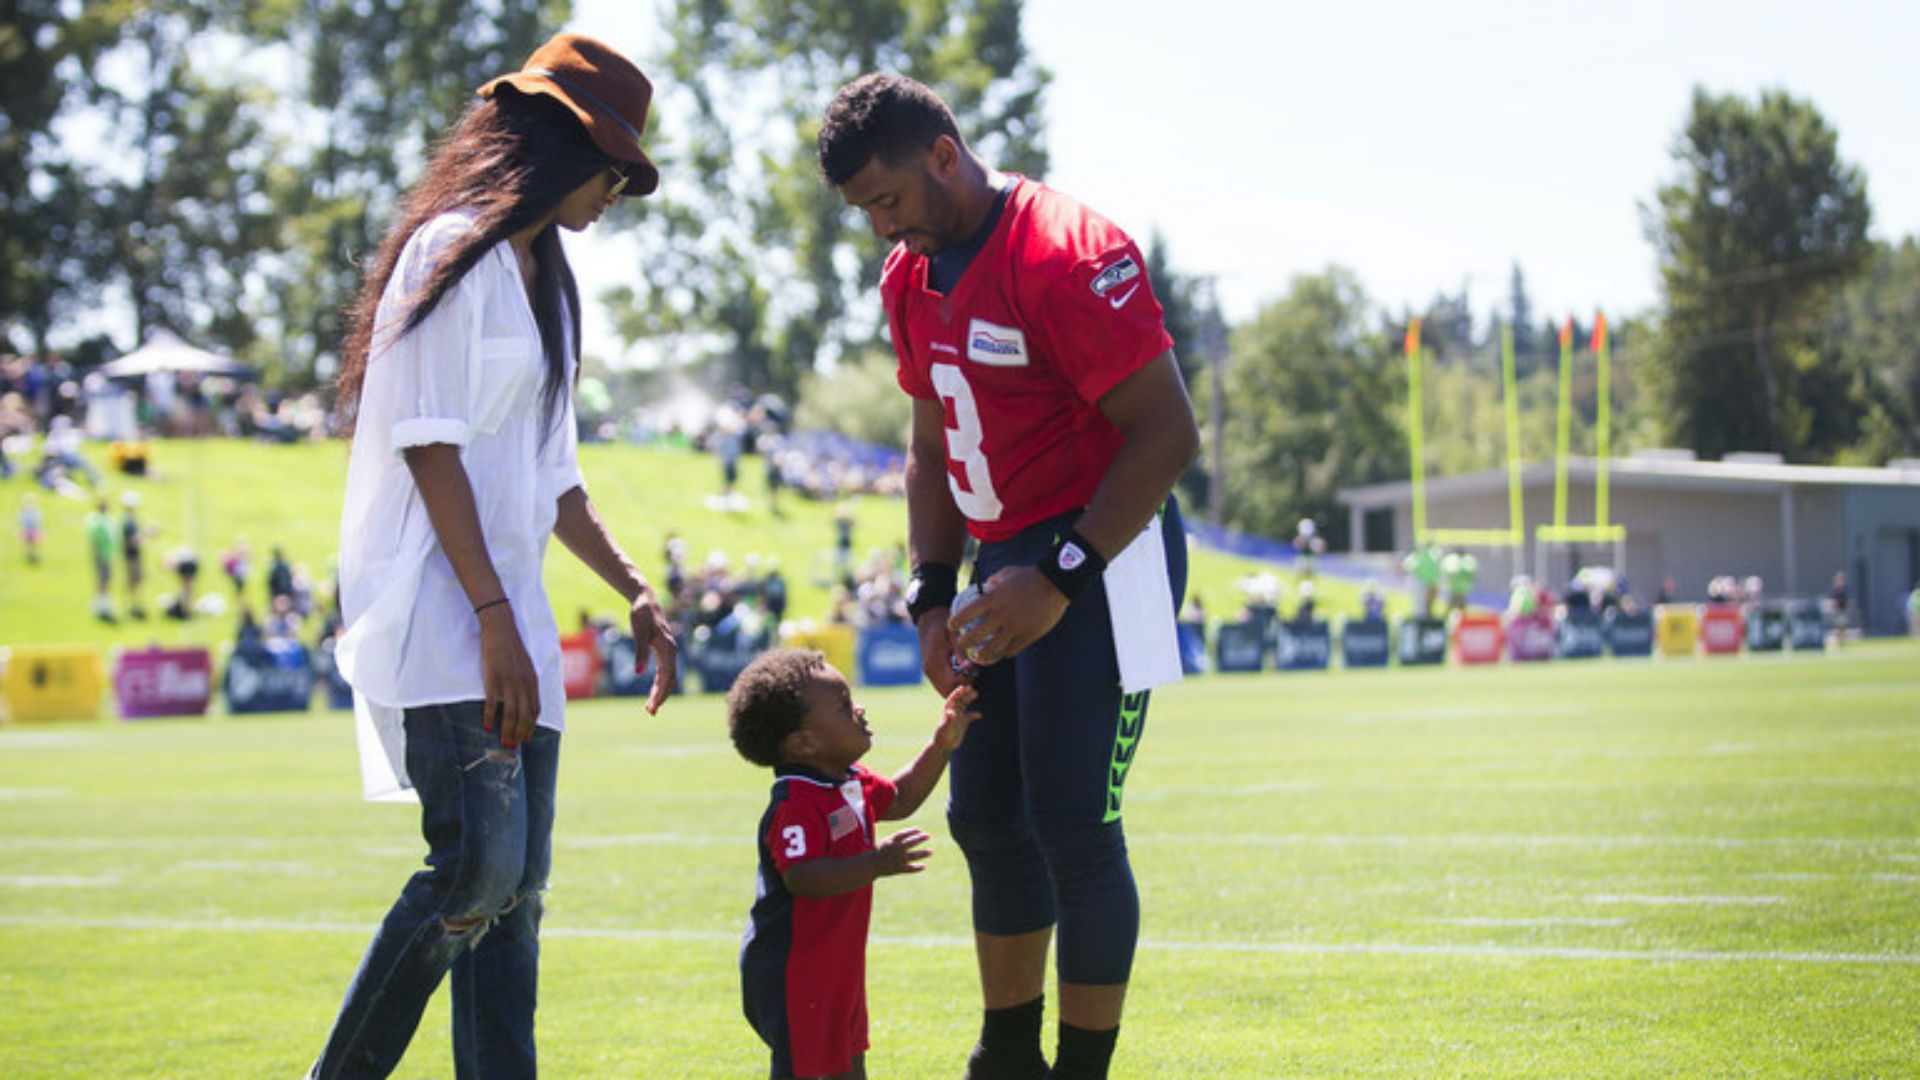 Ciara stirs up drama by taking her son to Russell Wilson's training camp